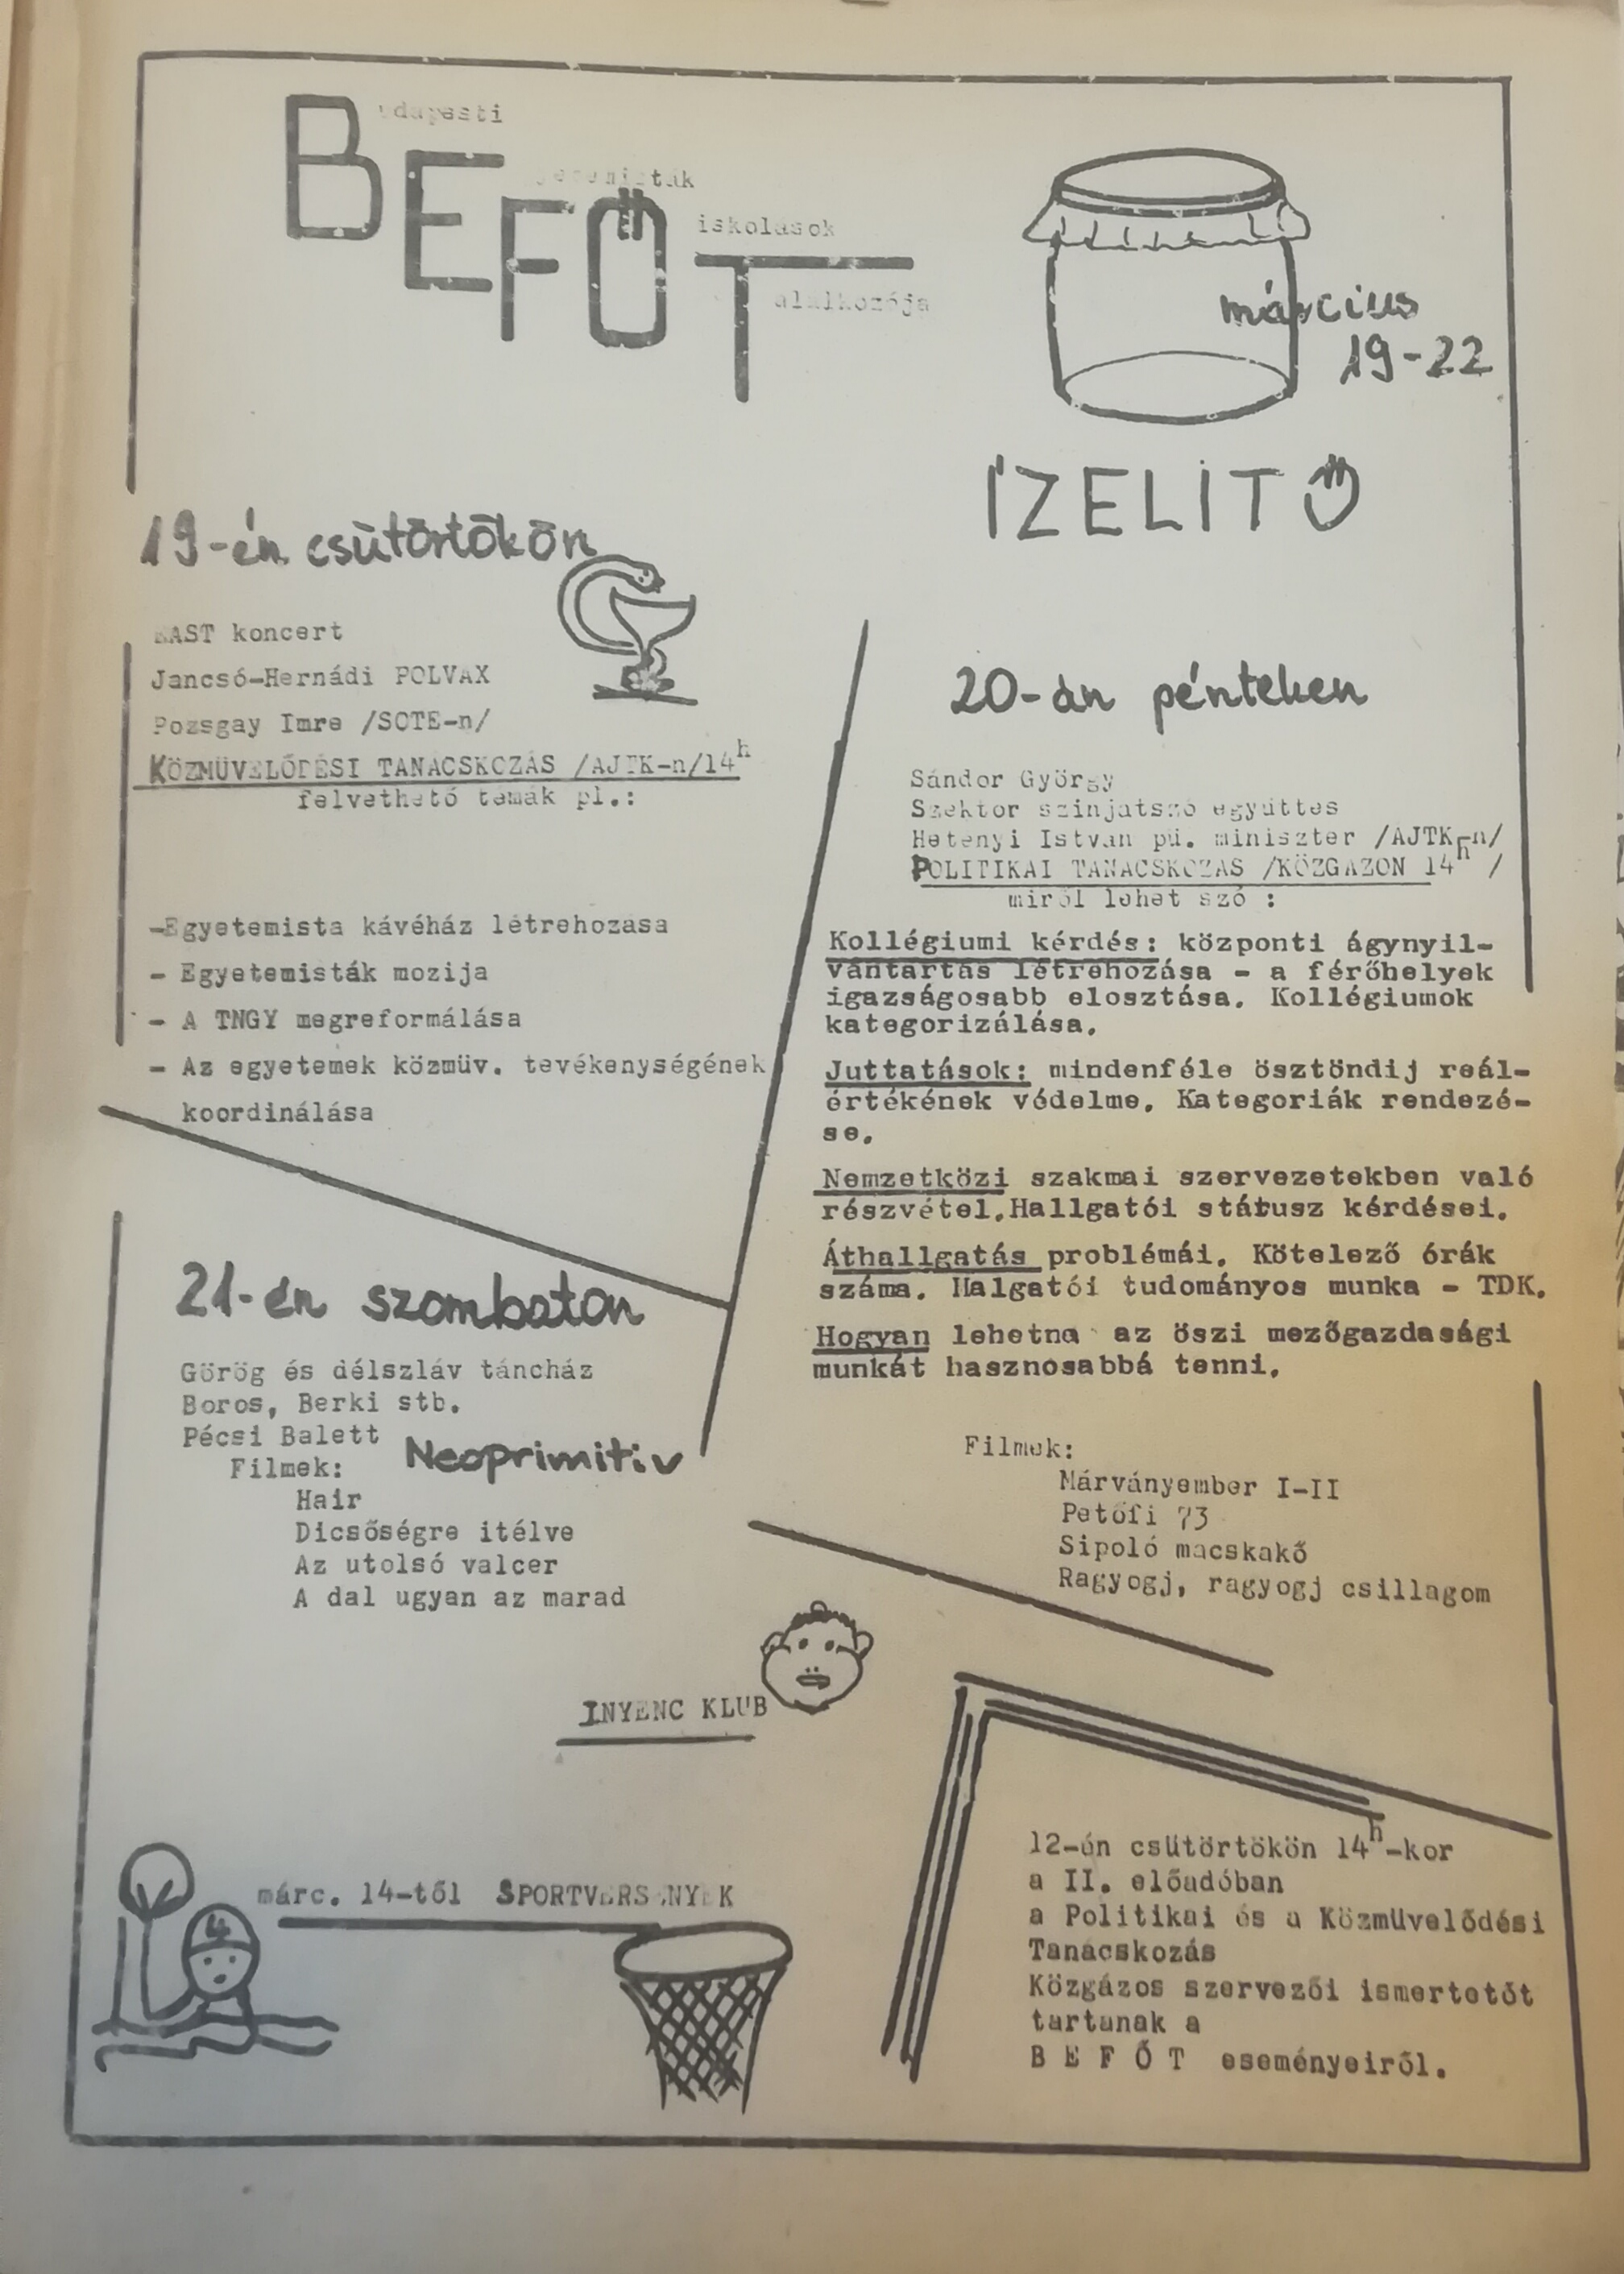 The program of the 'Befőt' in the 'Klub Közlöny'